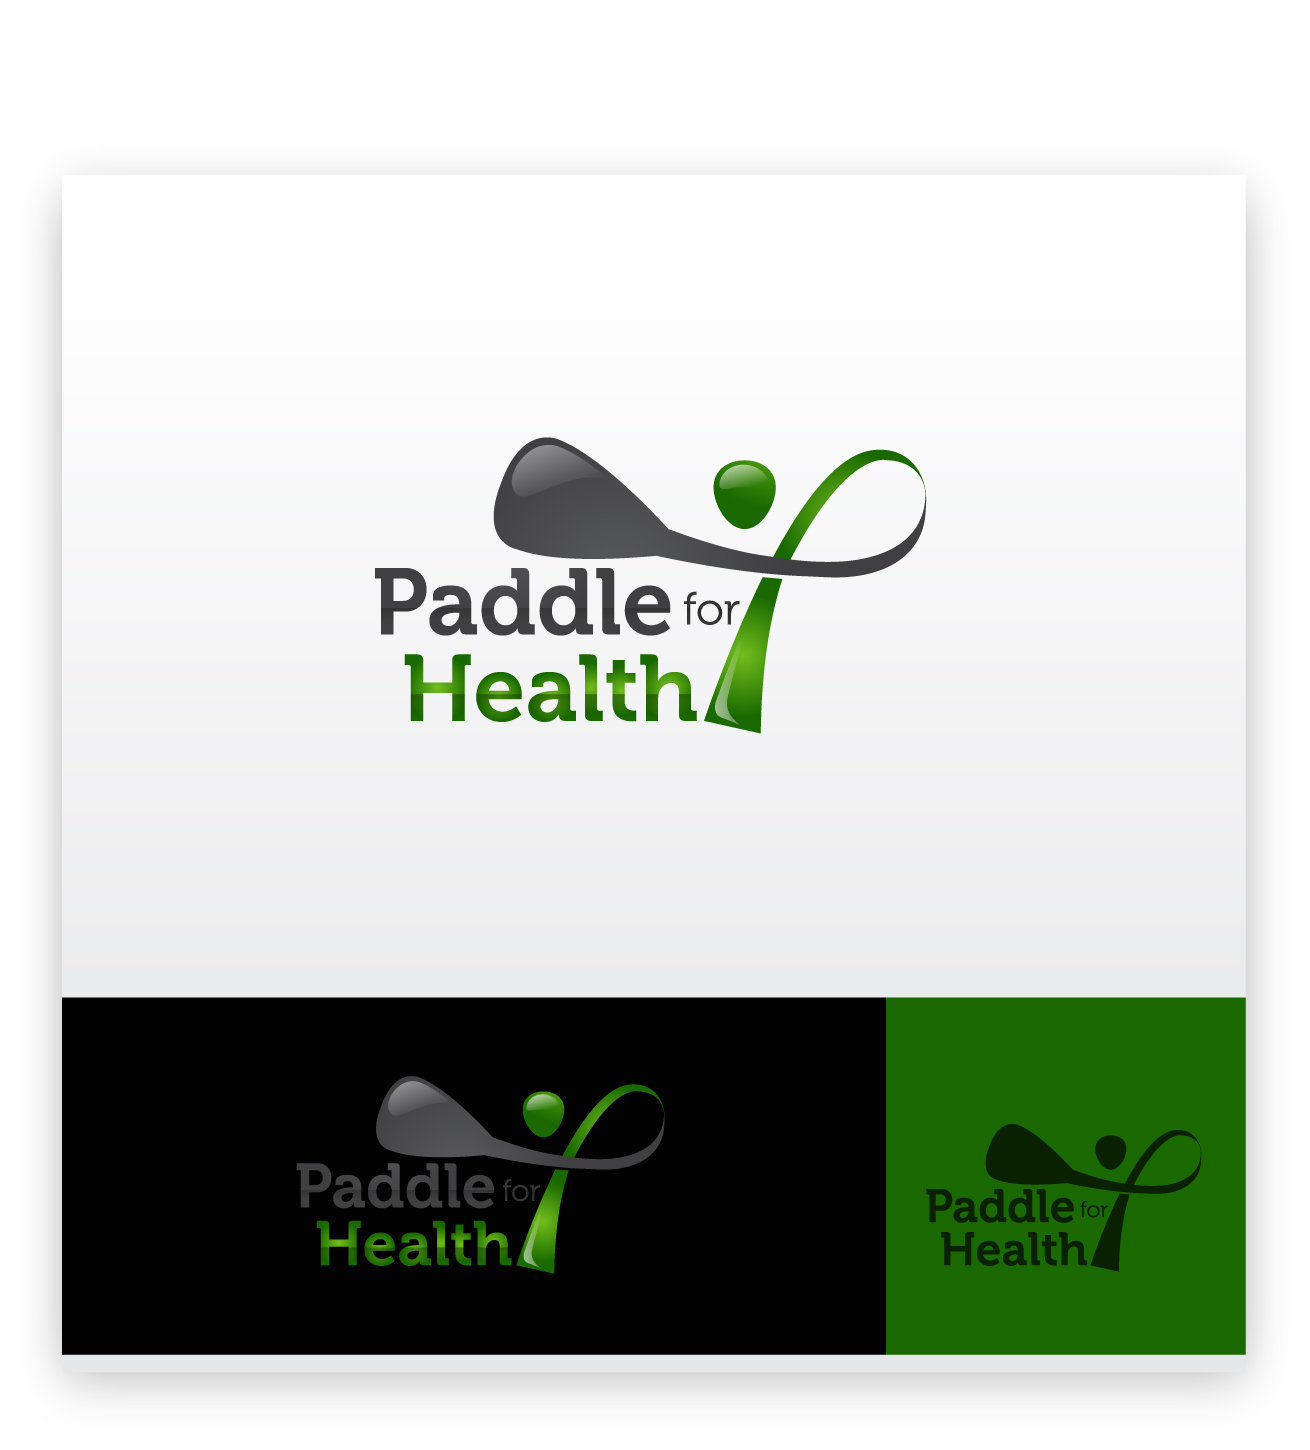 Logo Design by zoiDesign - Entry No. 27 in the Logo Design Contest Creative Logo Design for Paddle for Health.